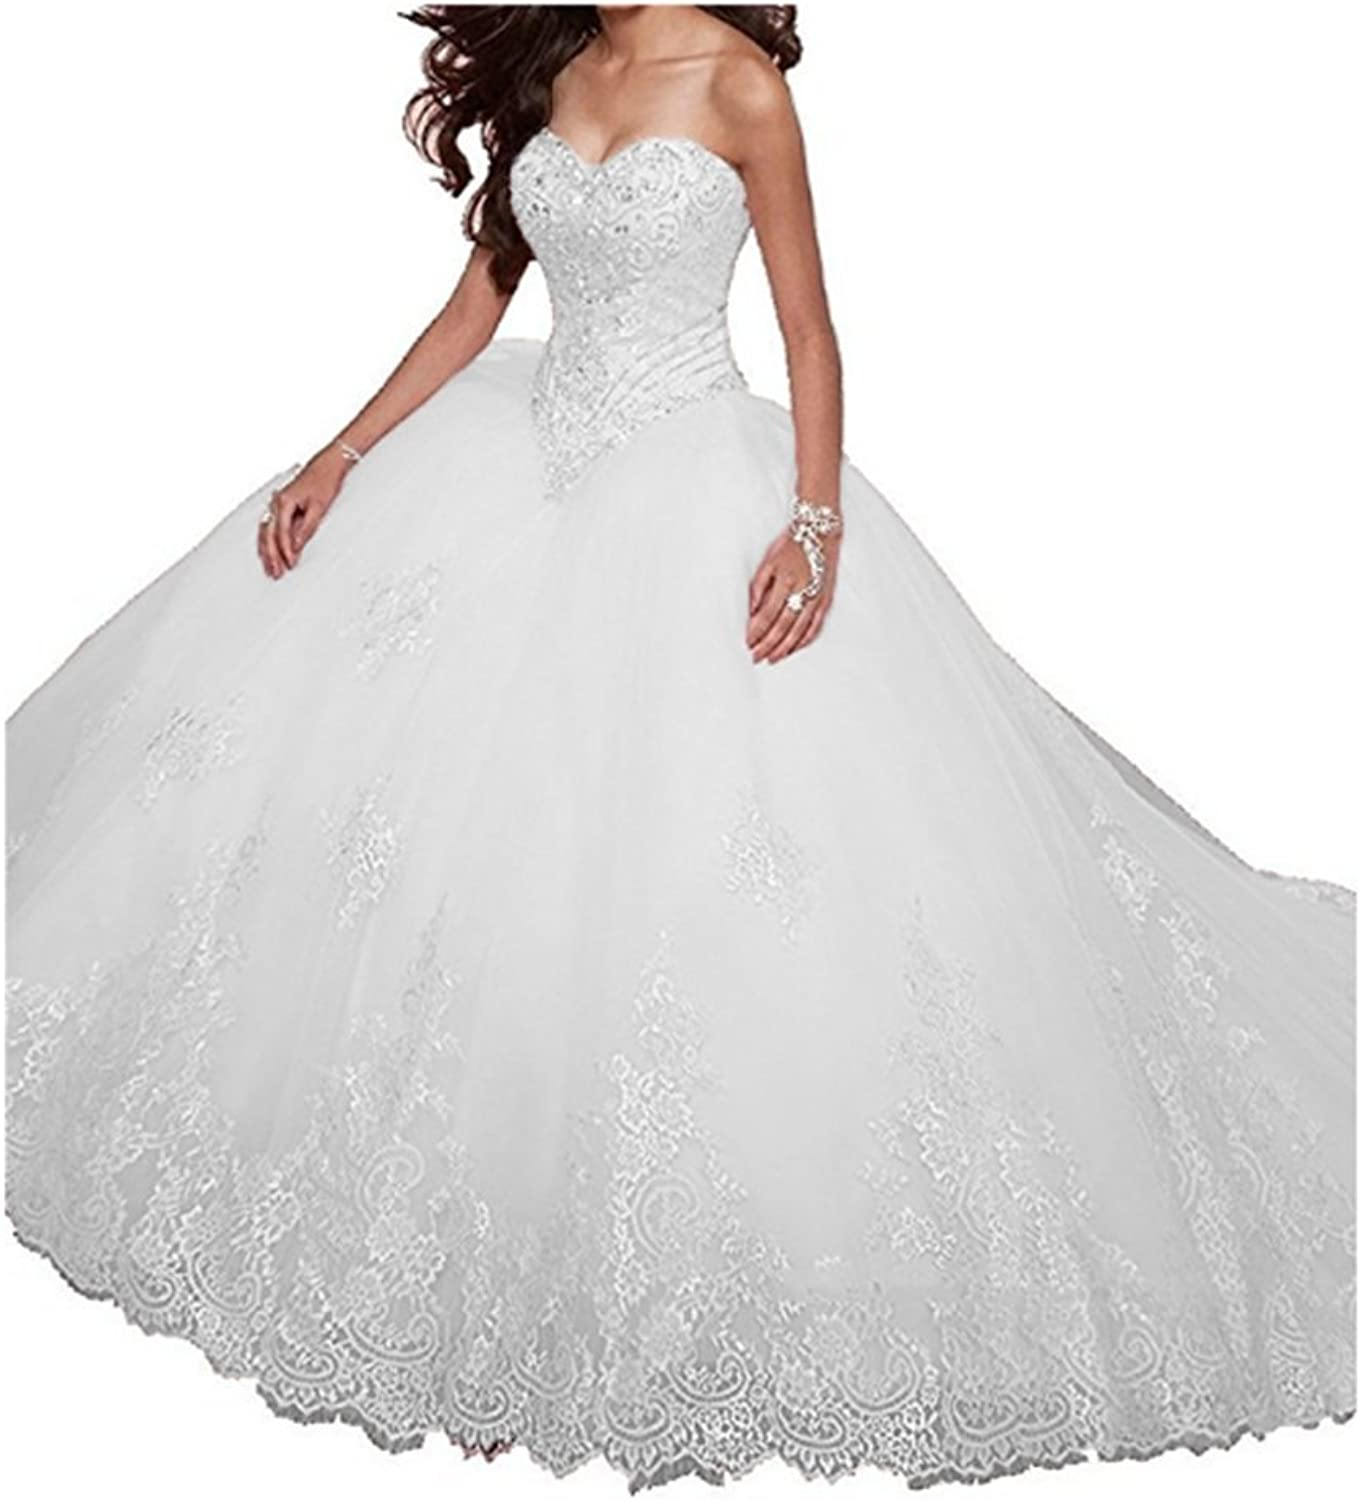 FWVR Women's Sweetheart Appliques Beaded Ball Gown Long Tulle Quinceanera Prom Dresses